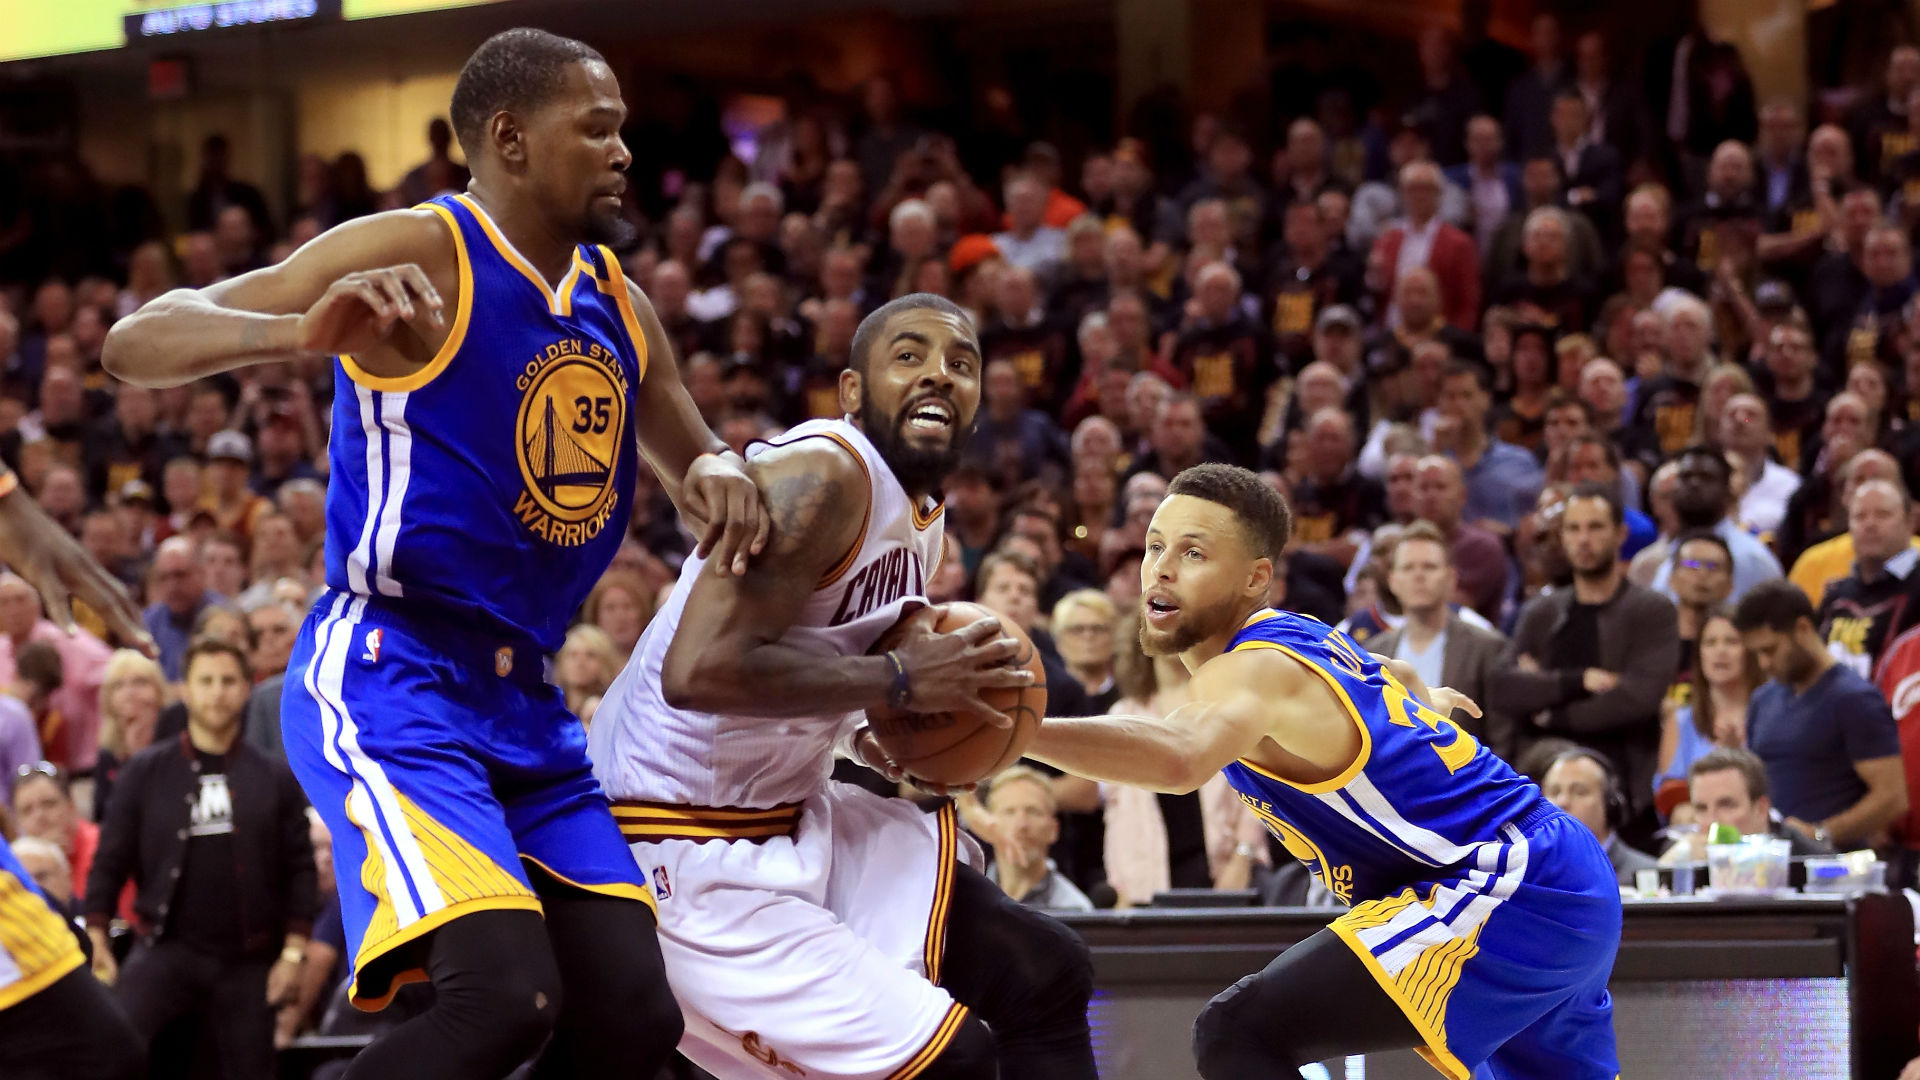 LeBron James climbs to third place in career NBA Finals scoring